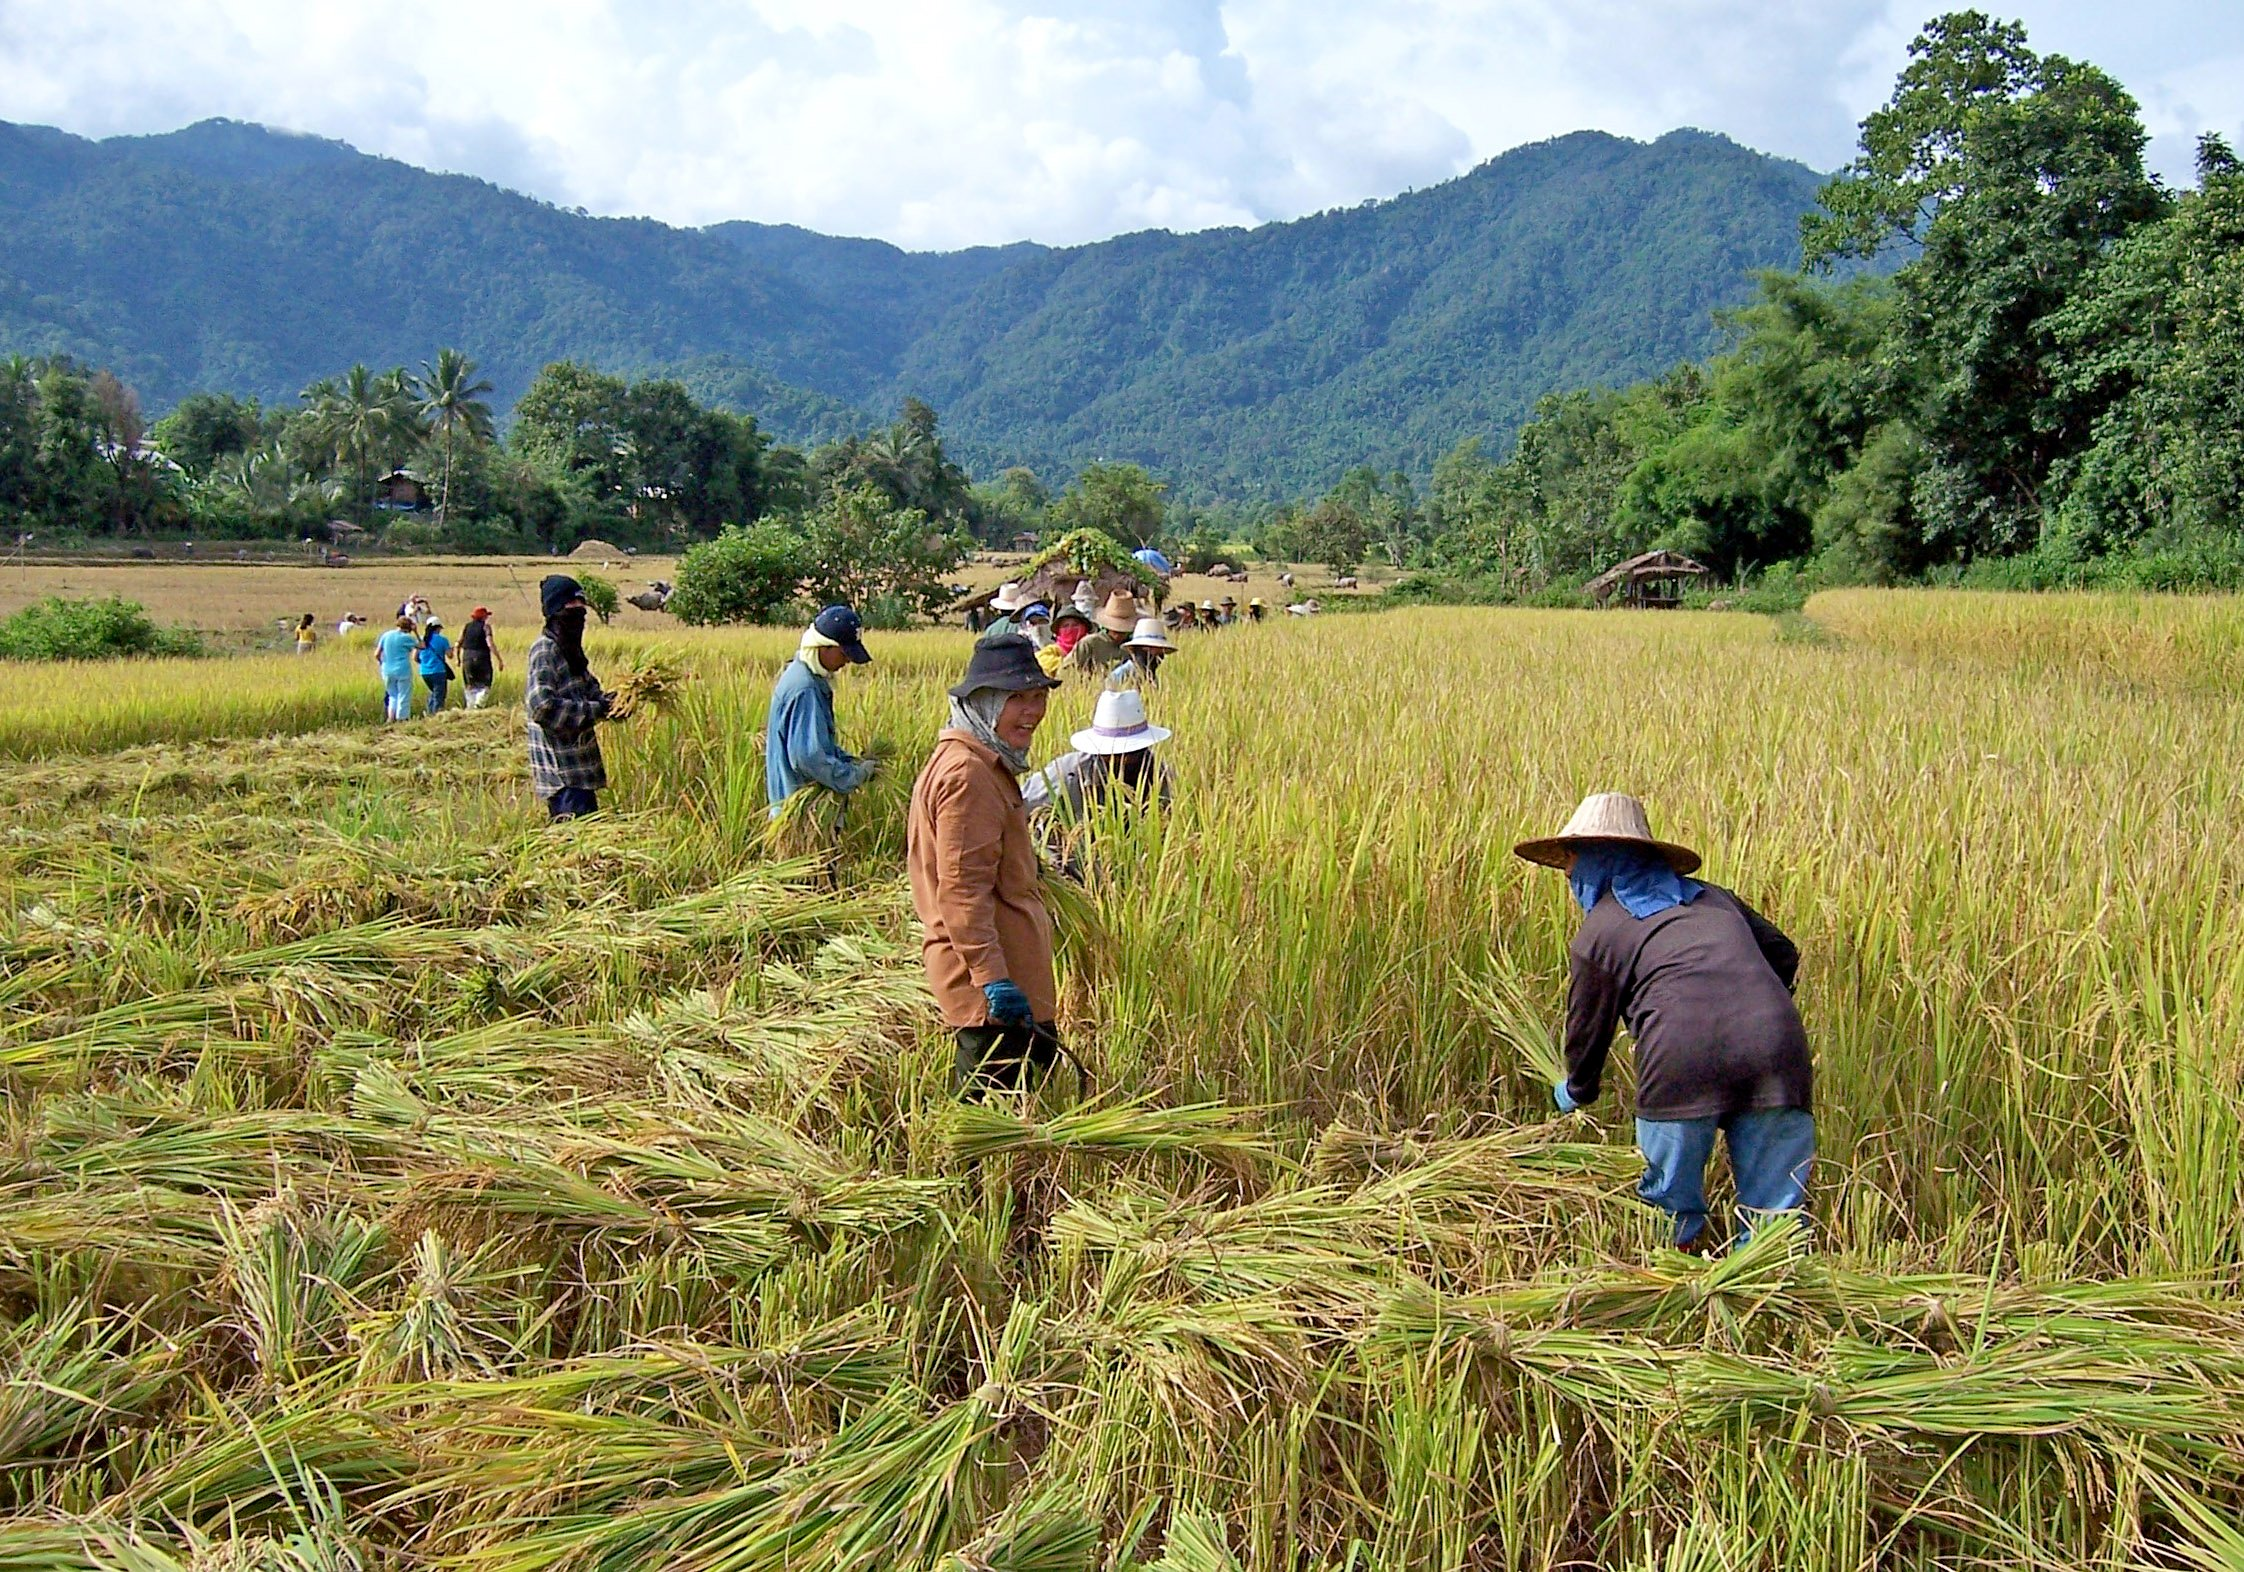 Harvesting rice in Thailand